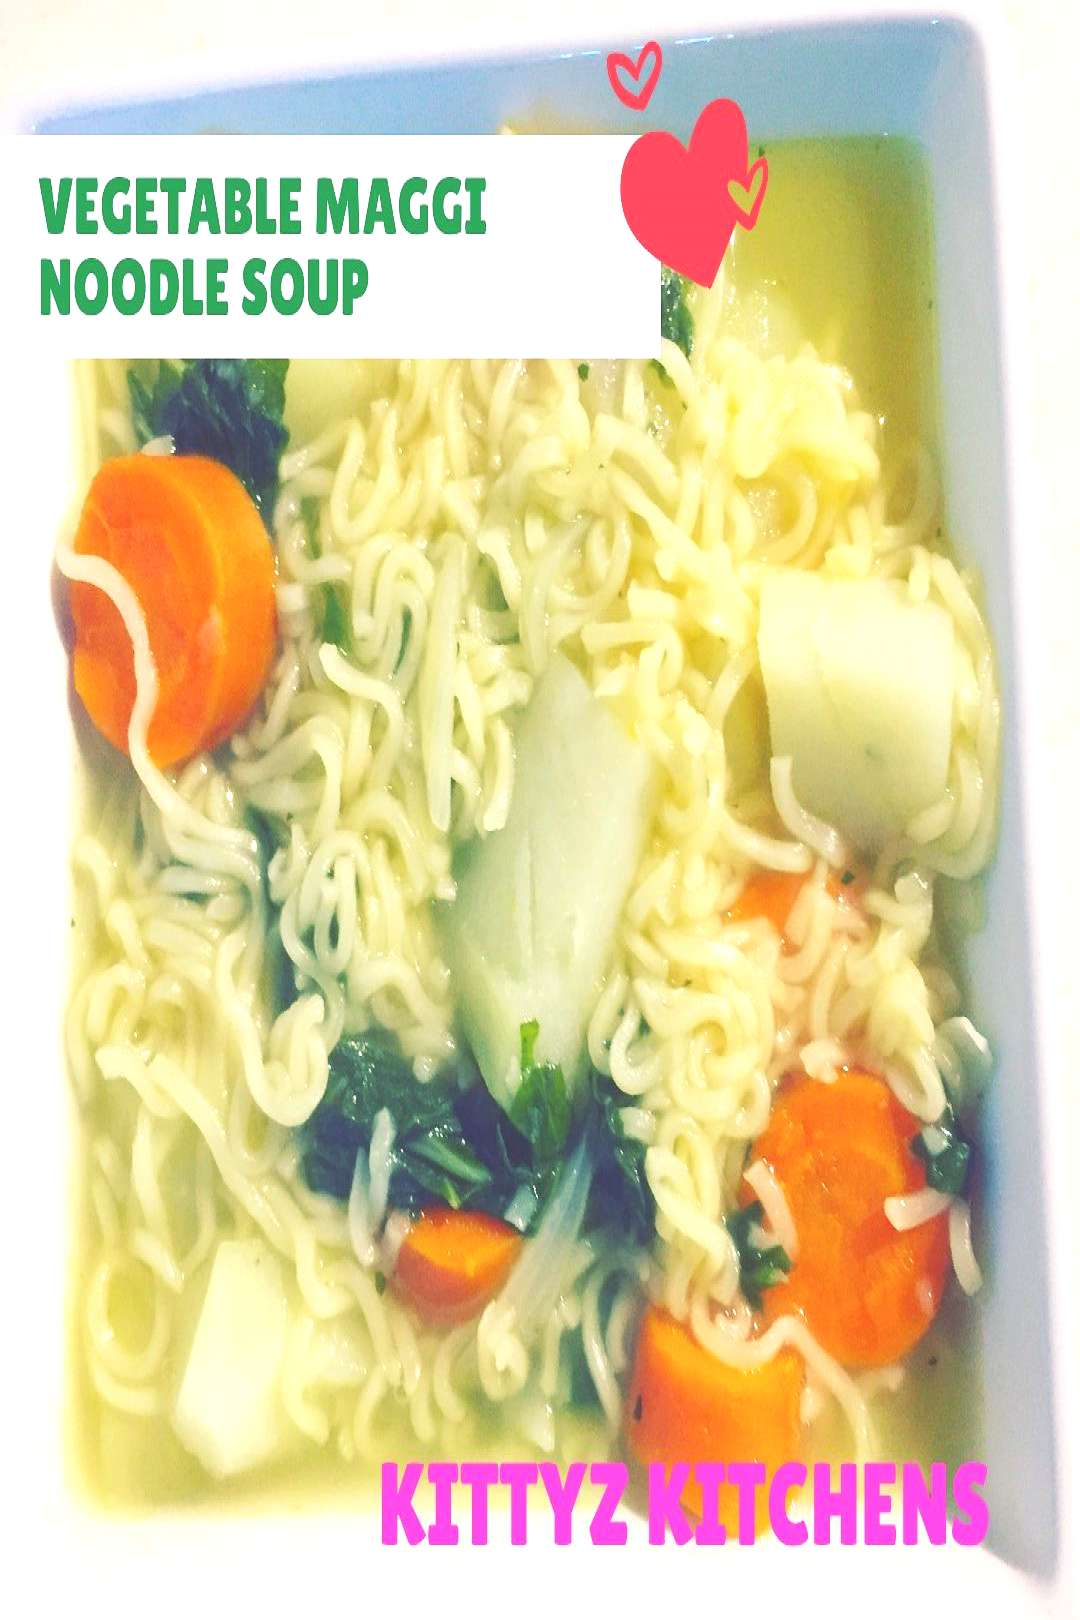 food possible text that says VEGETABLE MAGGI NOODLE SOUP KITTYZ K